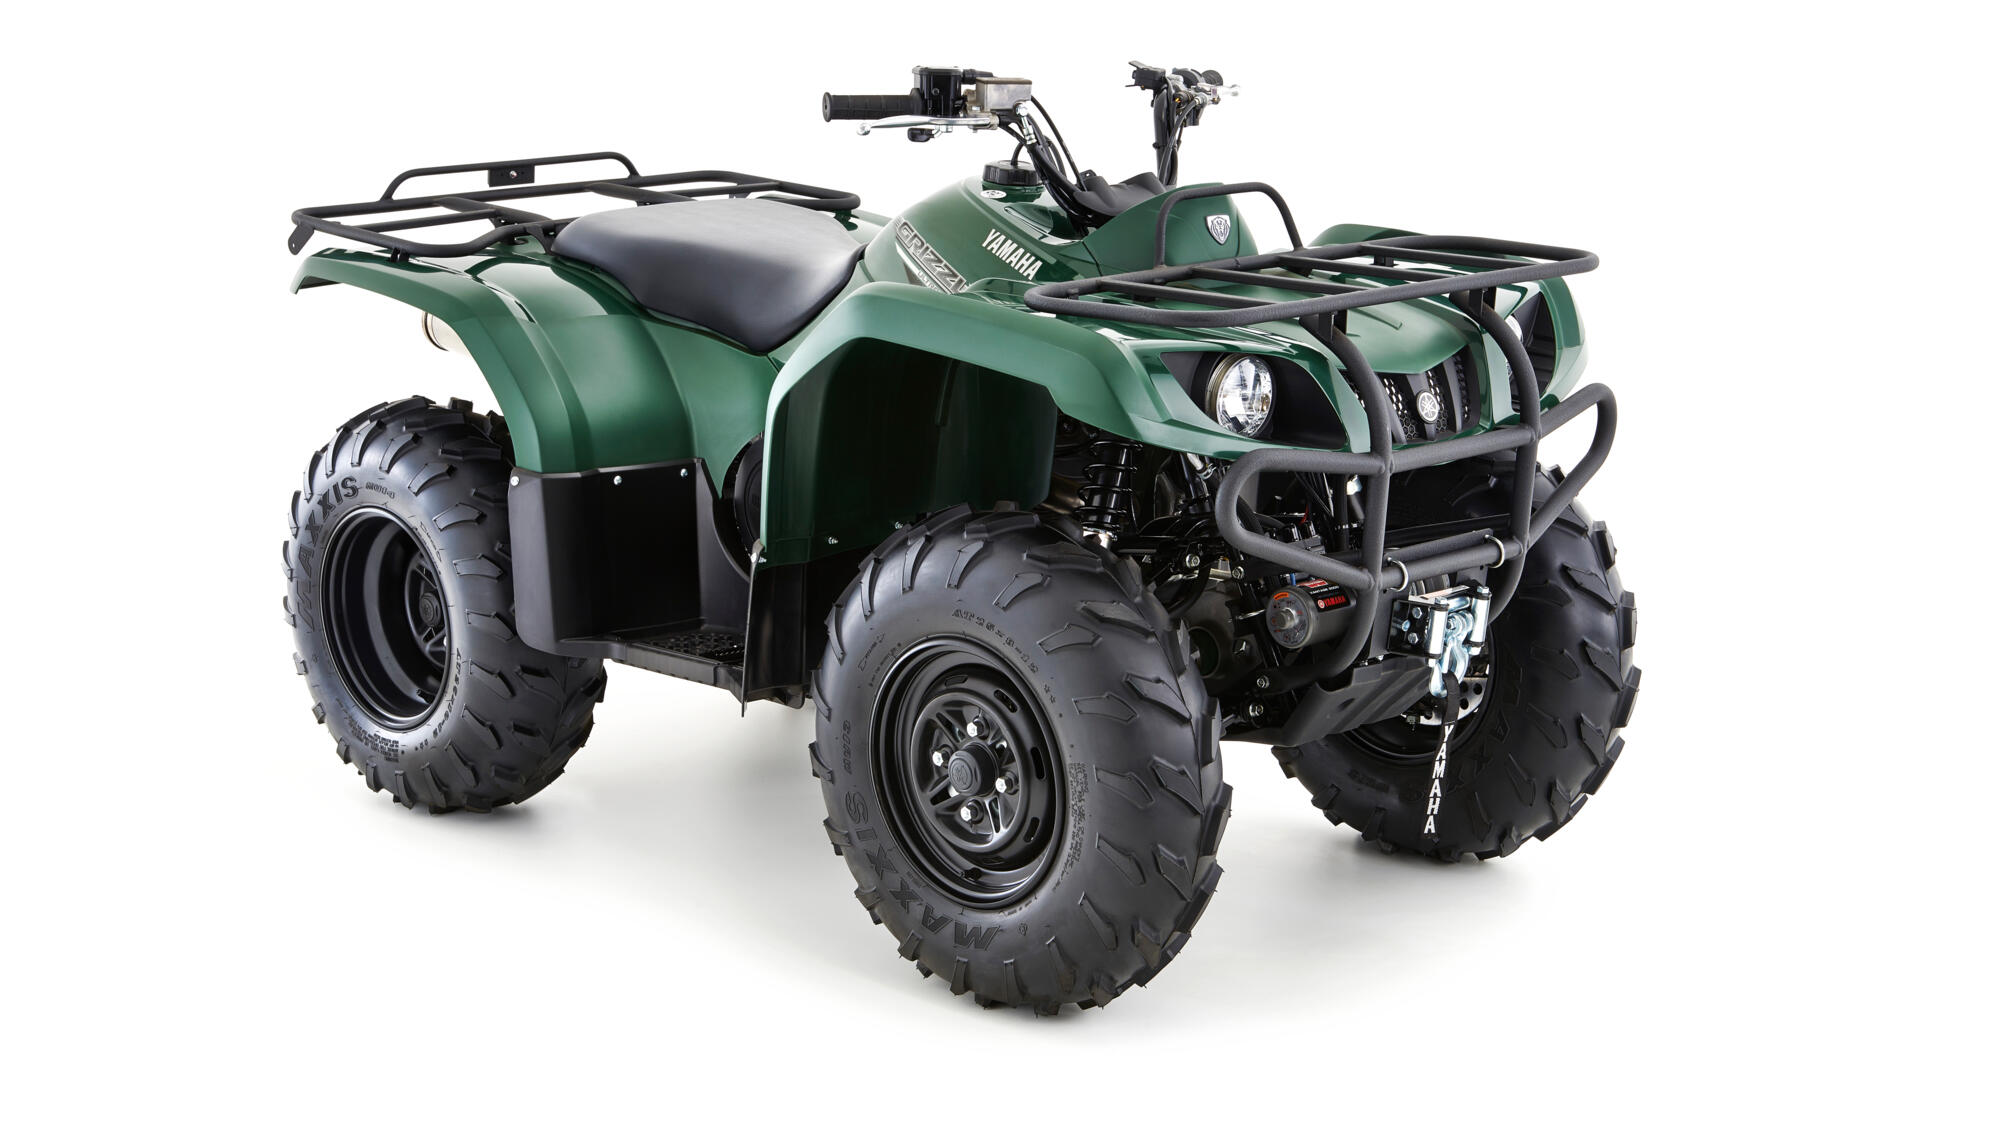 hight resolution of grizzly 350 4wd atv yamaha motor yamaha grizzly 600 engine diagram grizzly 350 4wd grizzly 350